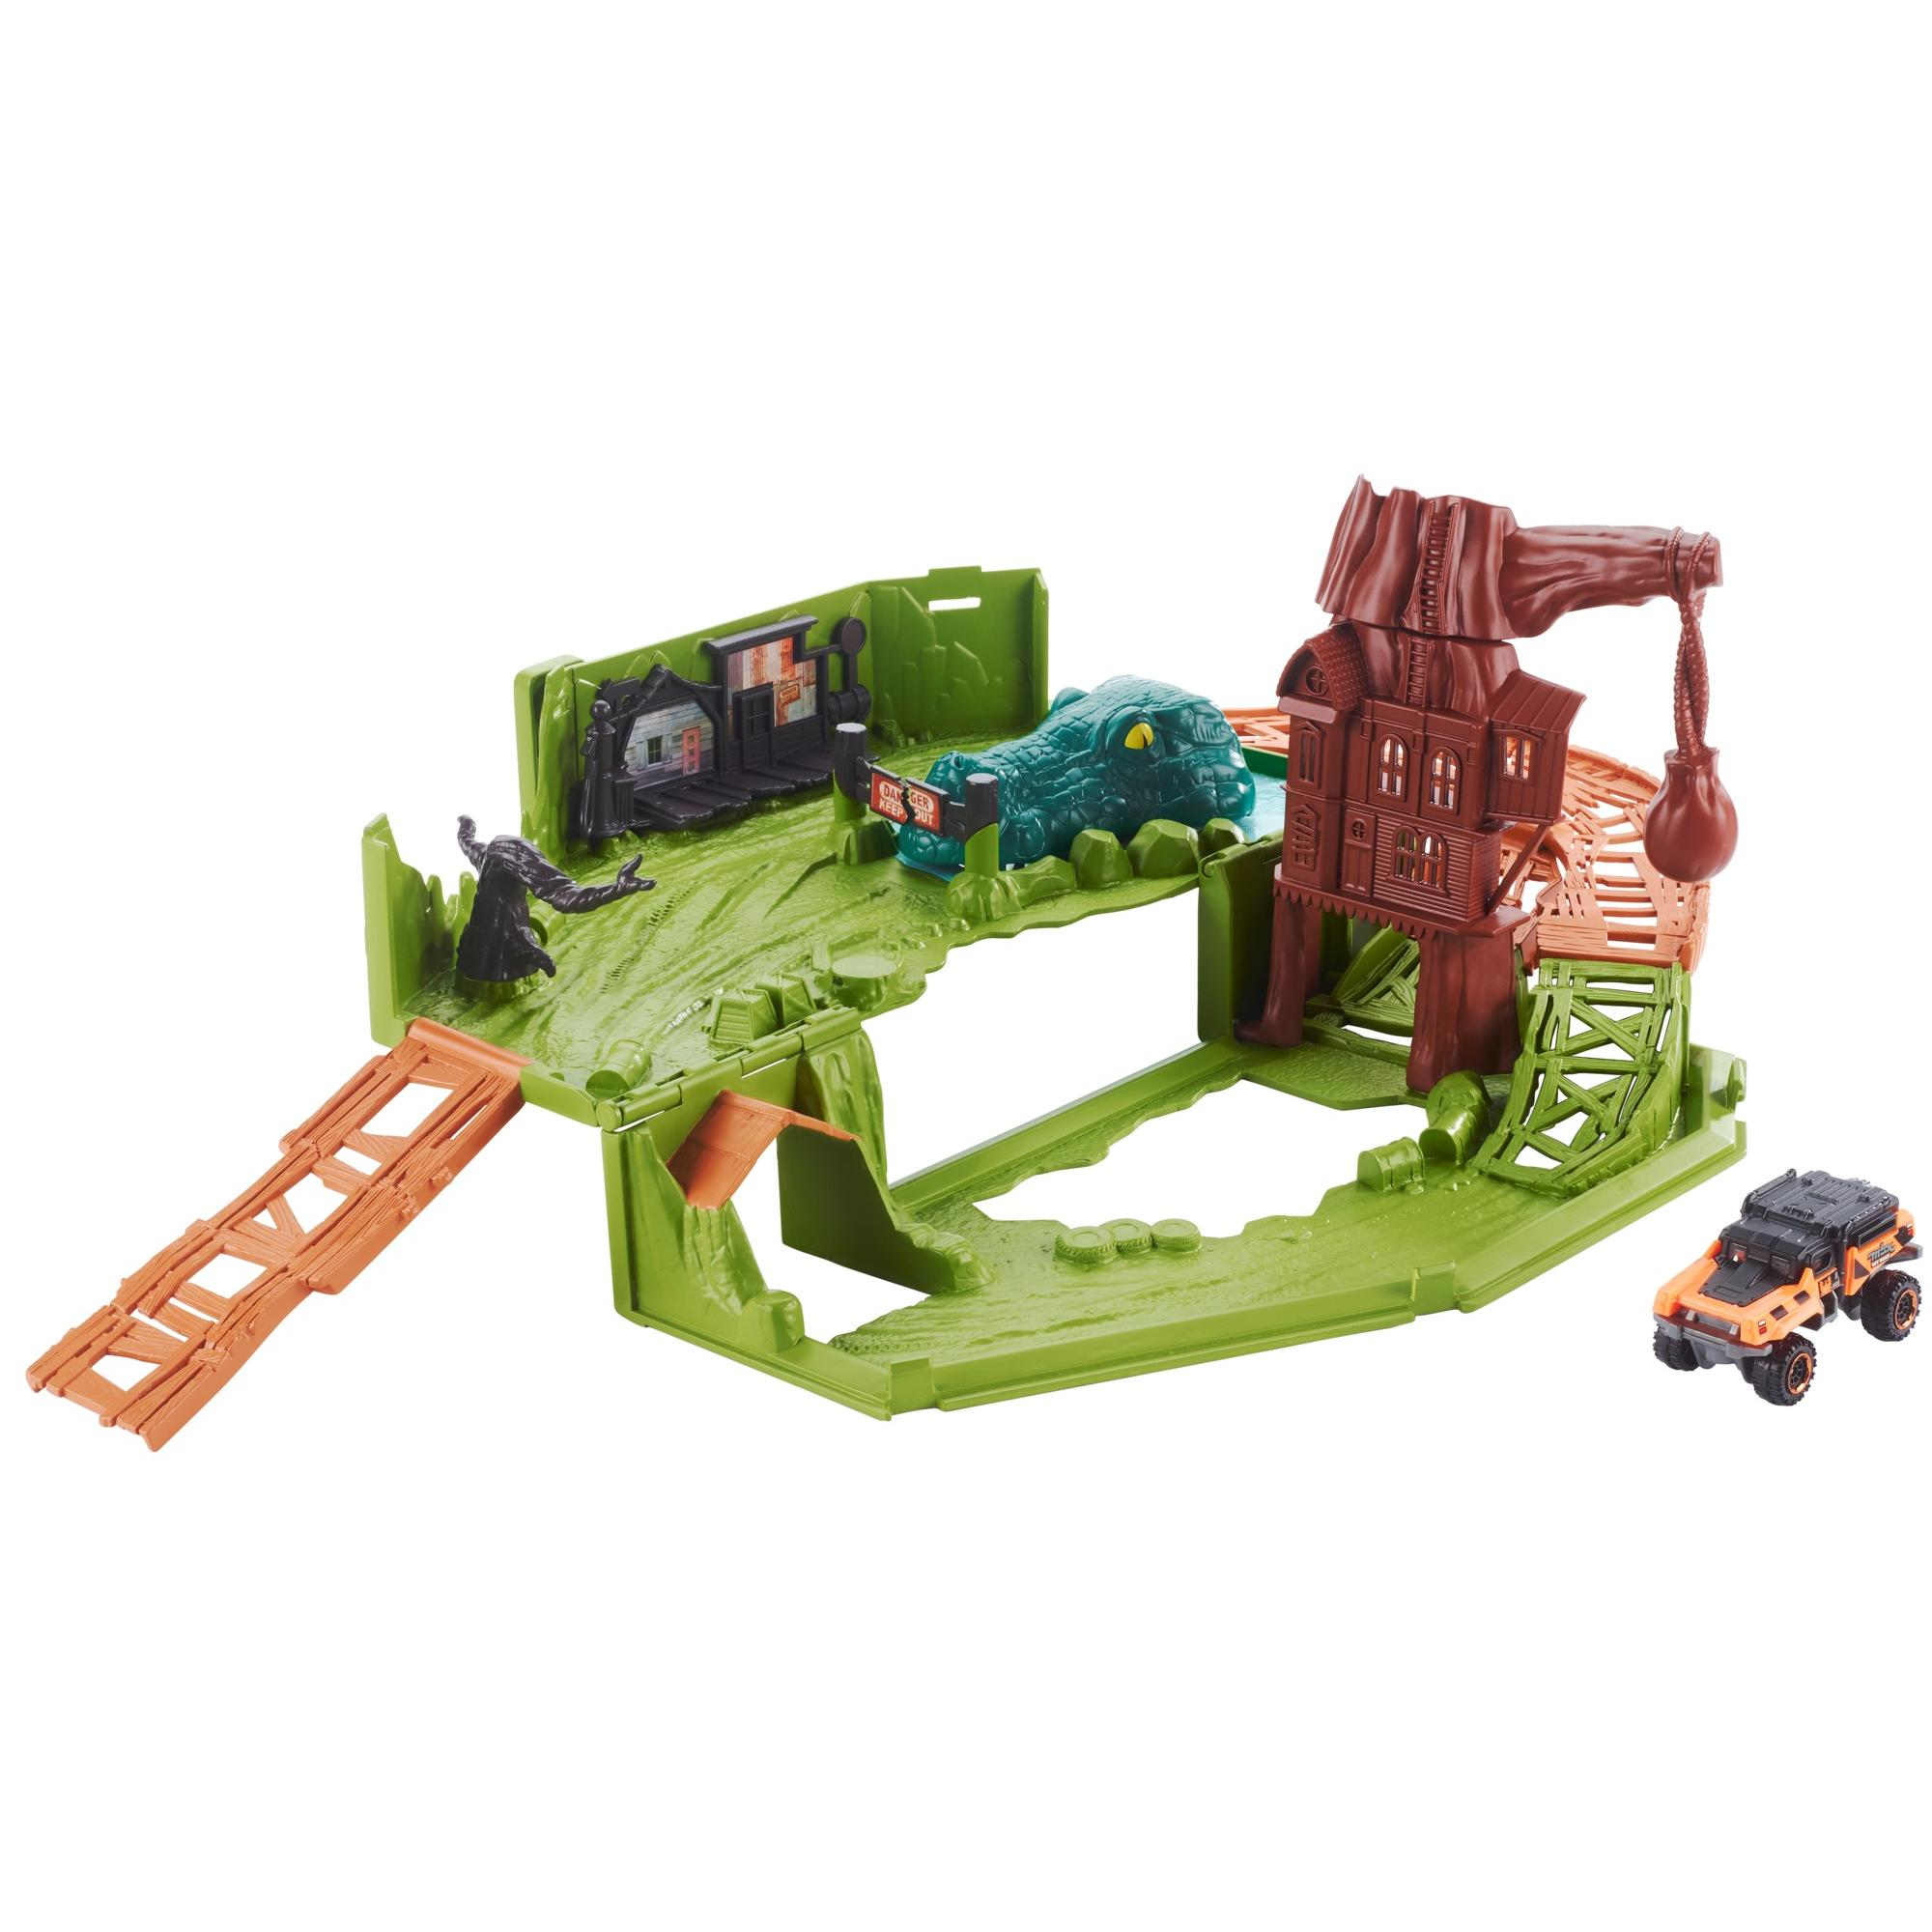 Matchbox Swamp Chomper Play Set with 1-Vehicle Included